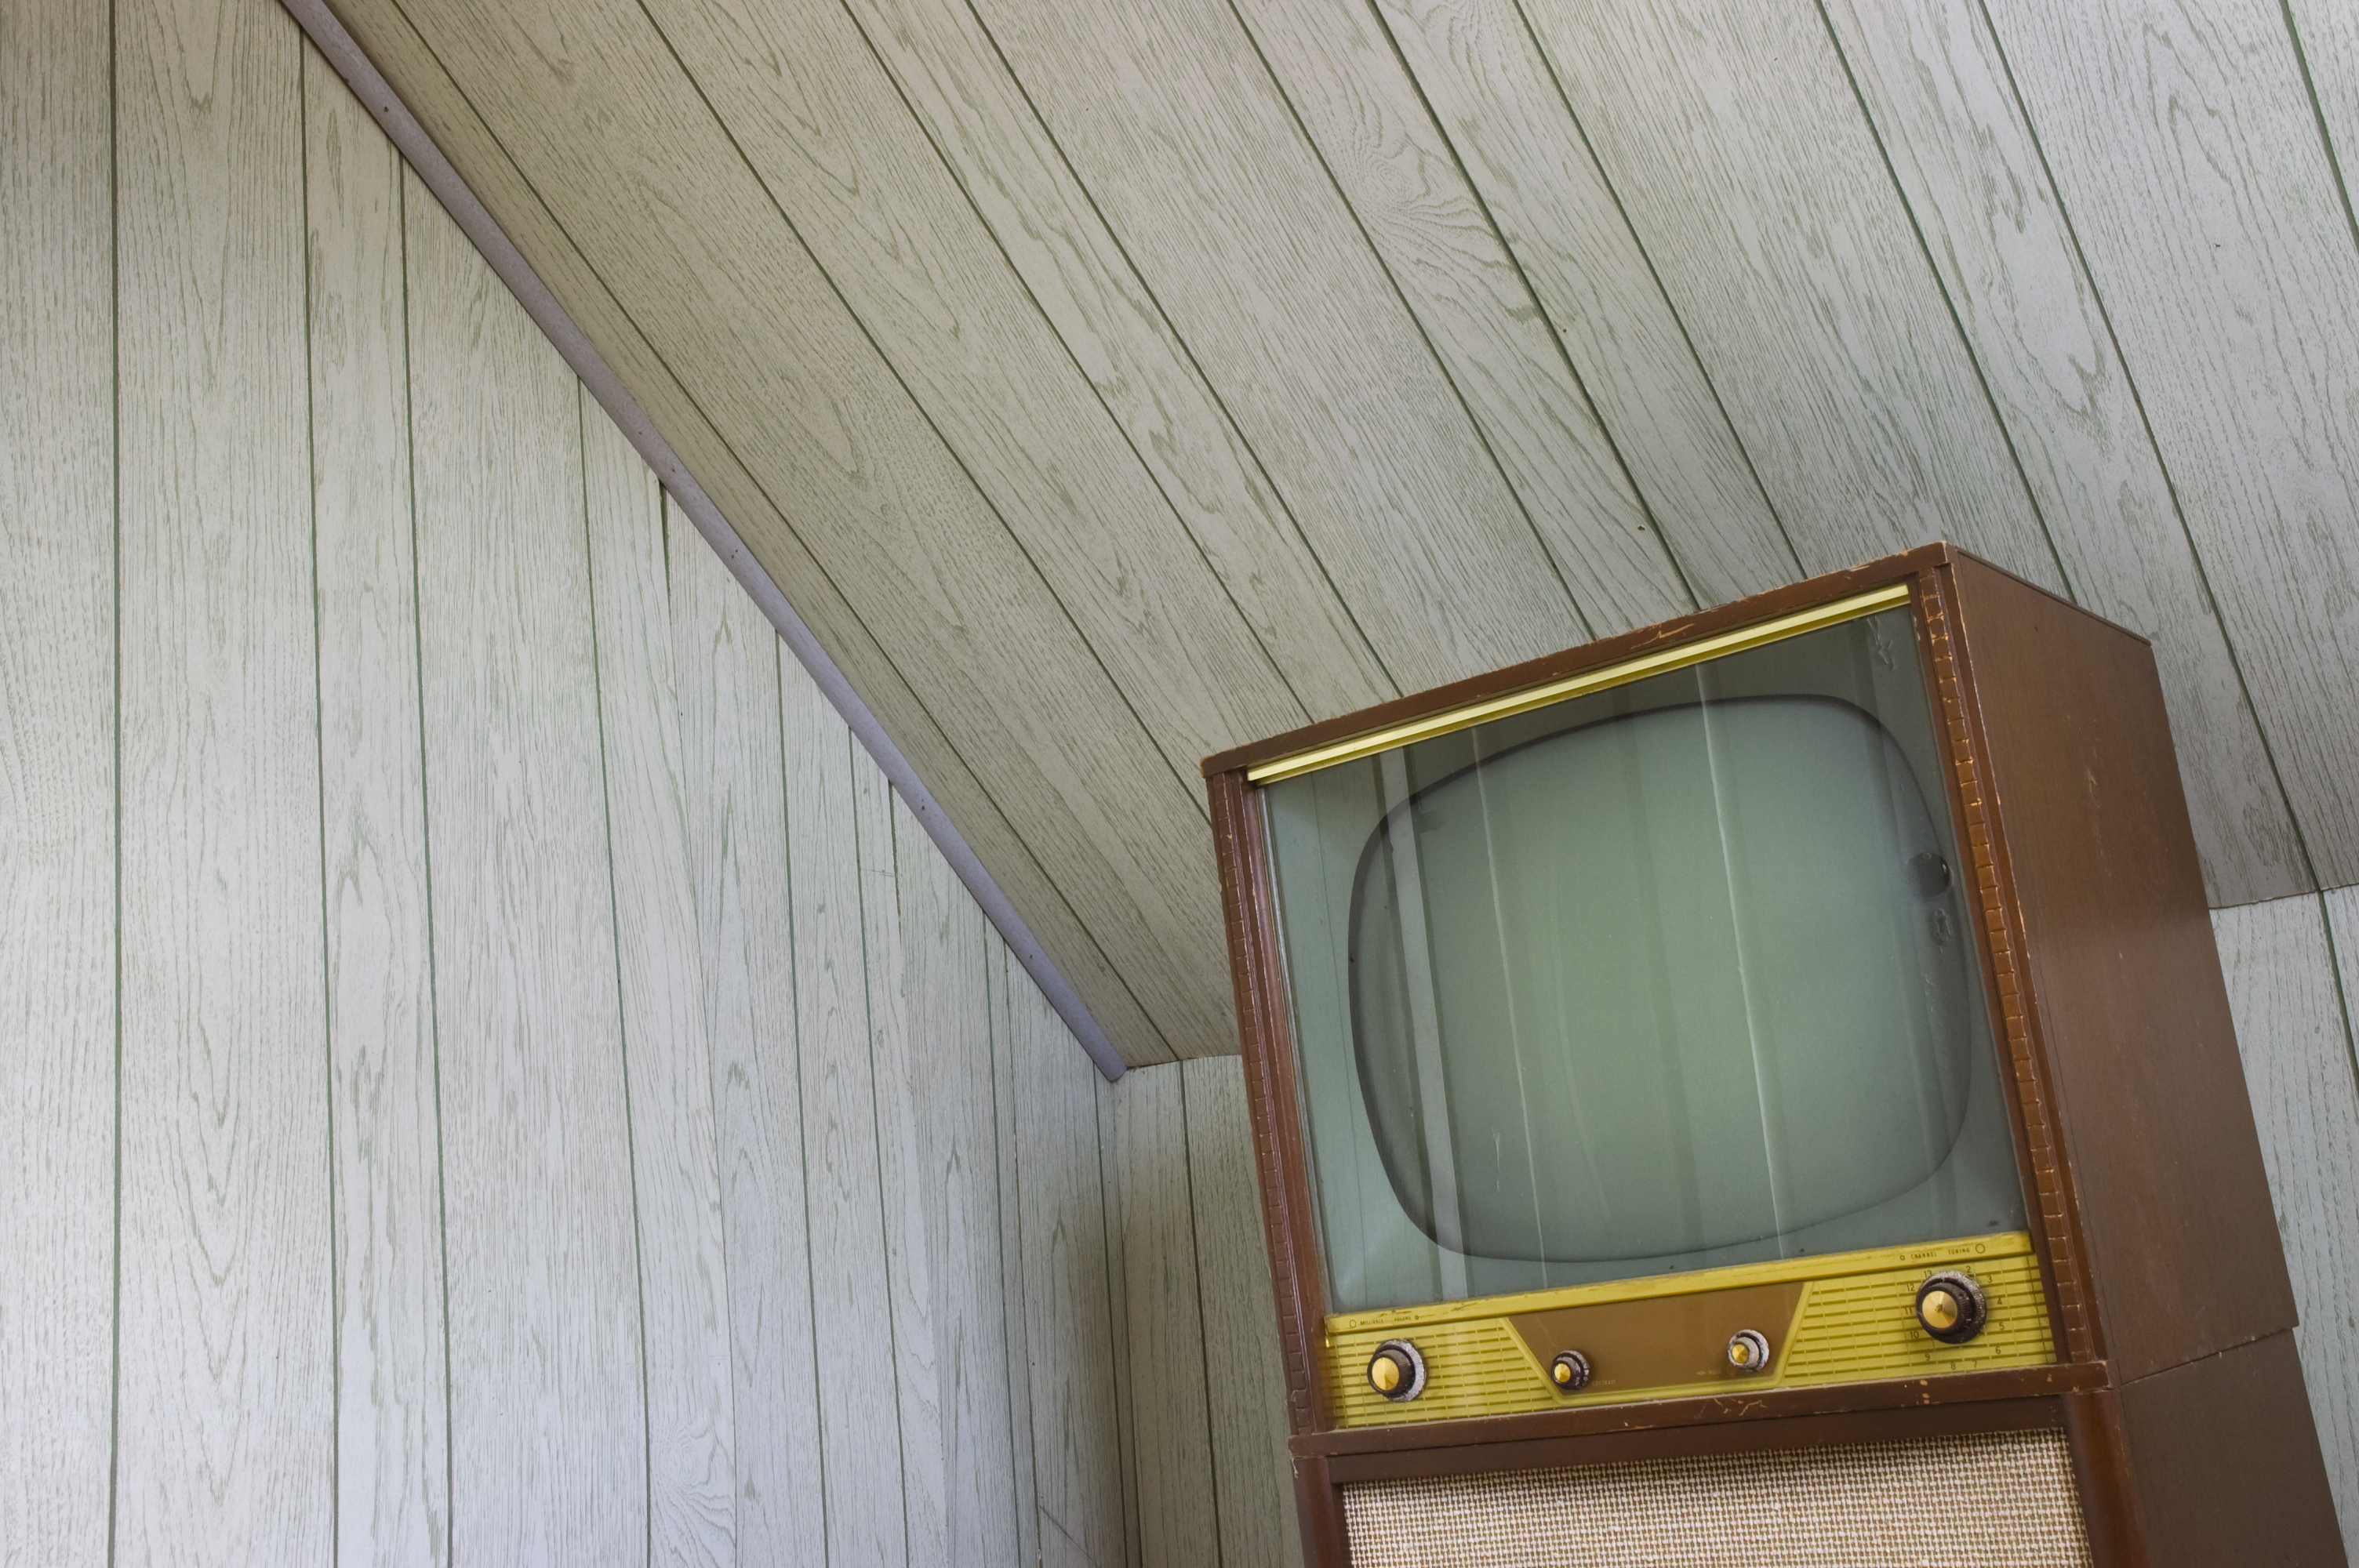 What To Do With Outdated Wood Paneled Walls Hunker